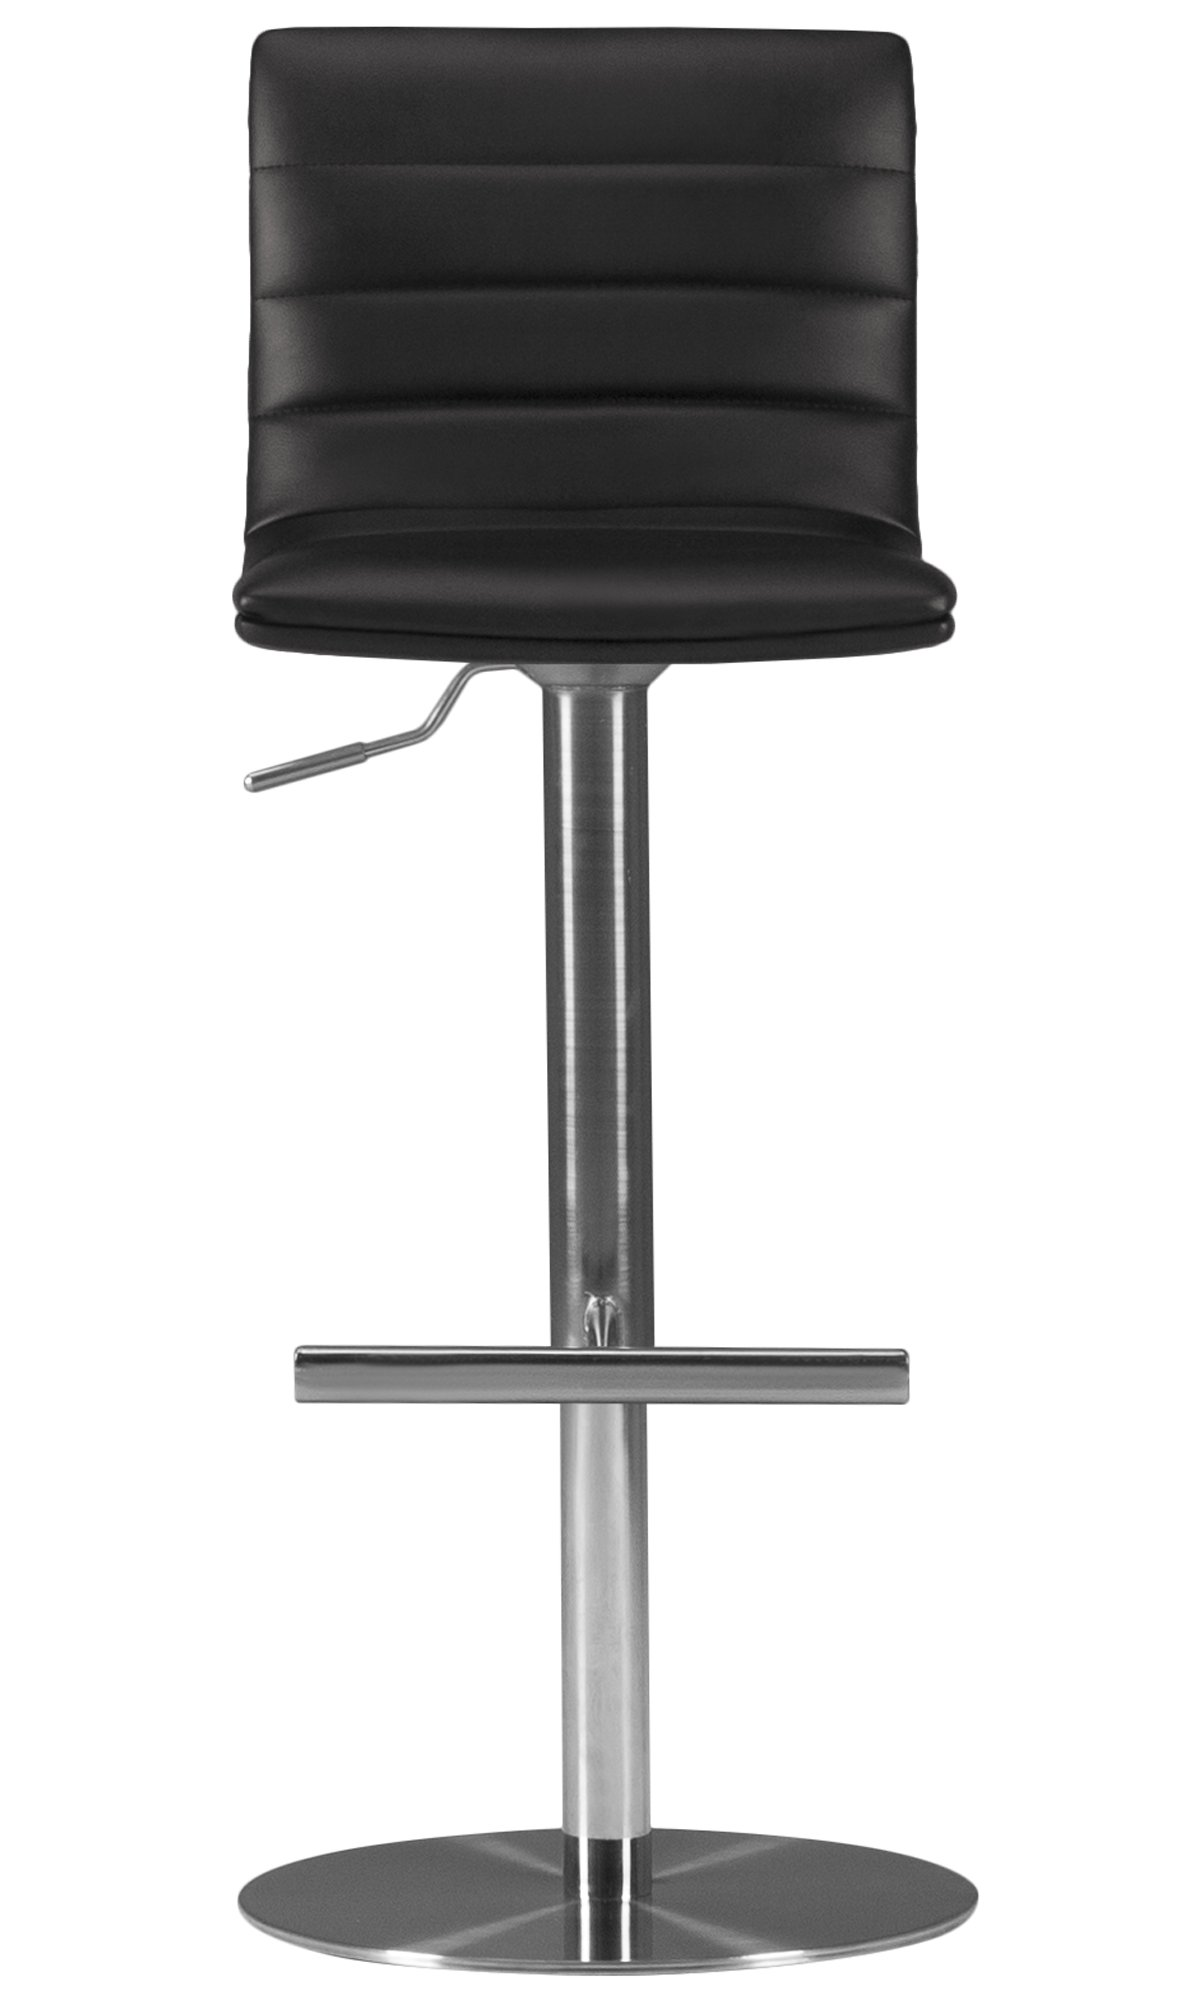 Ellis Black Upholstered Adjustable Stool